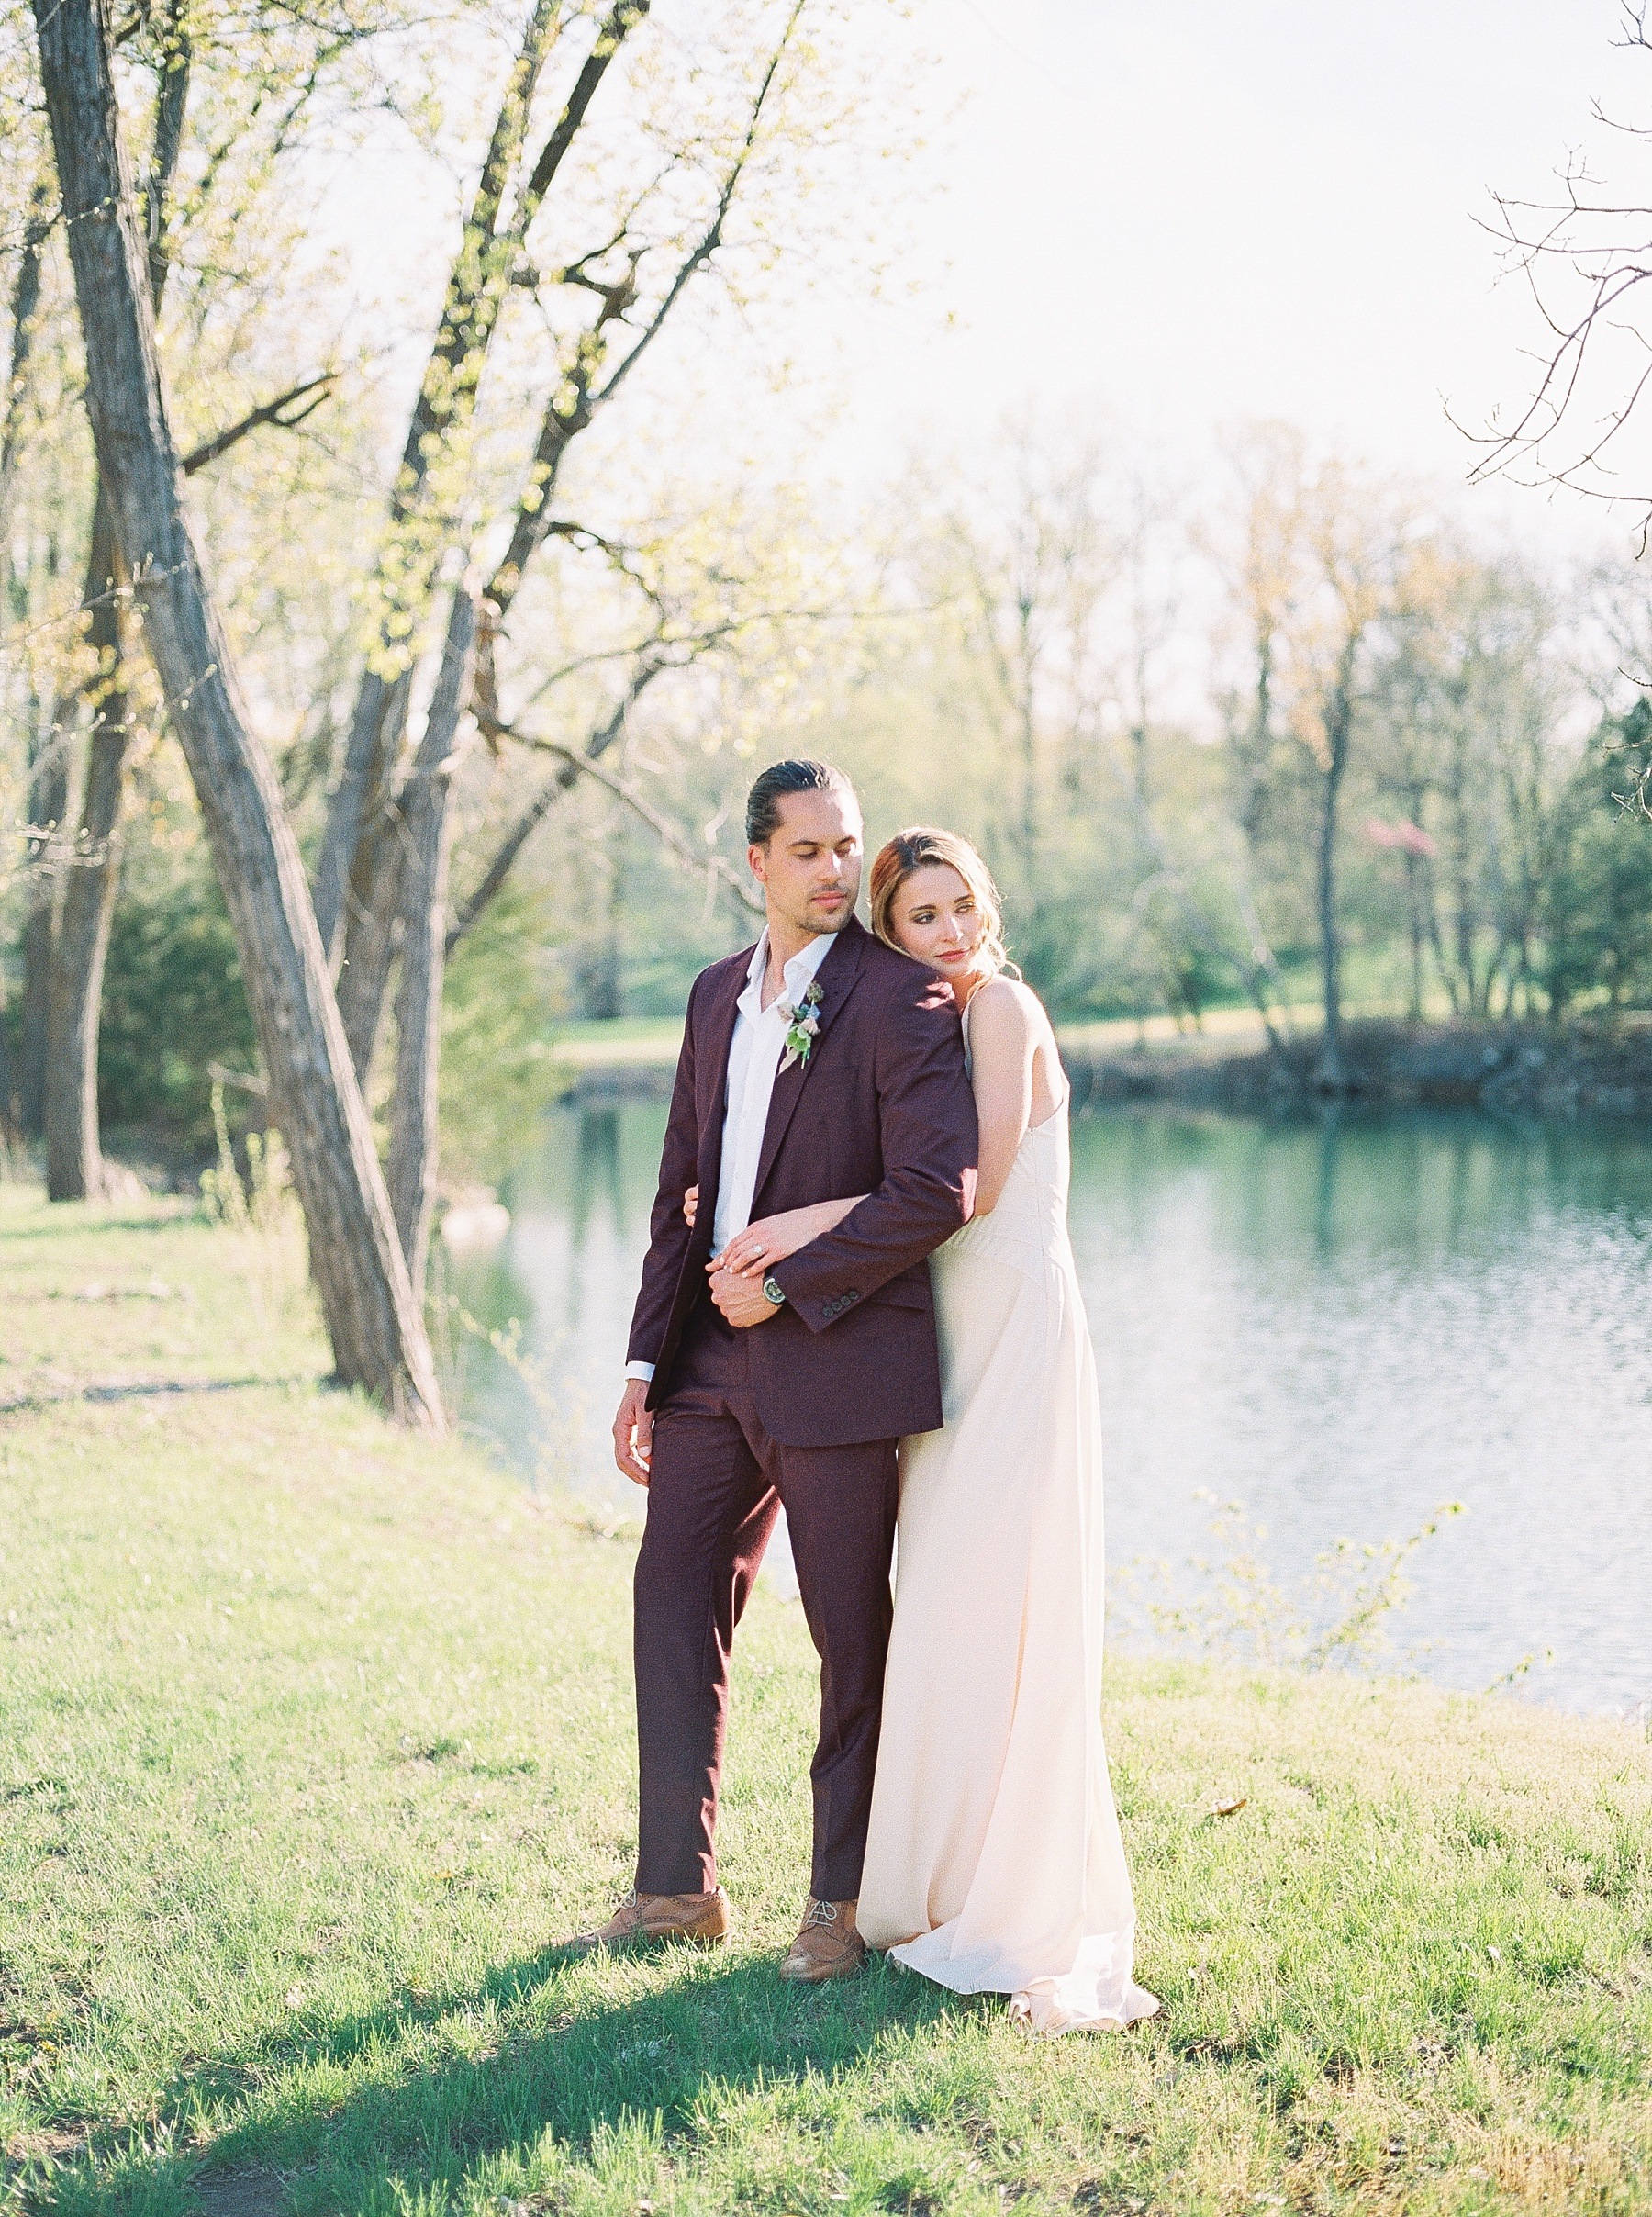 Intimate Spanish and French Inspired Destination Wedding with Lakeside Dinner Party at Dusk at Wildcliff by Kelsi Kliethermes Photography Best Missouri and Maui Wedding Photographer_0073.jpg